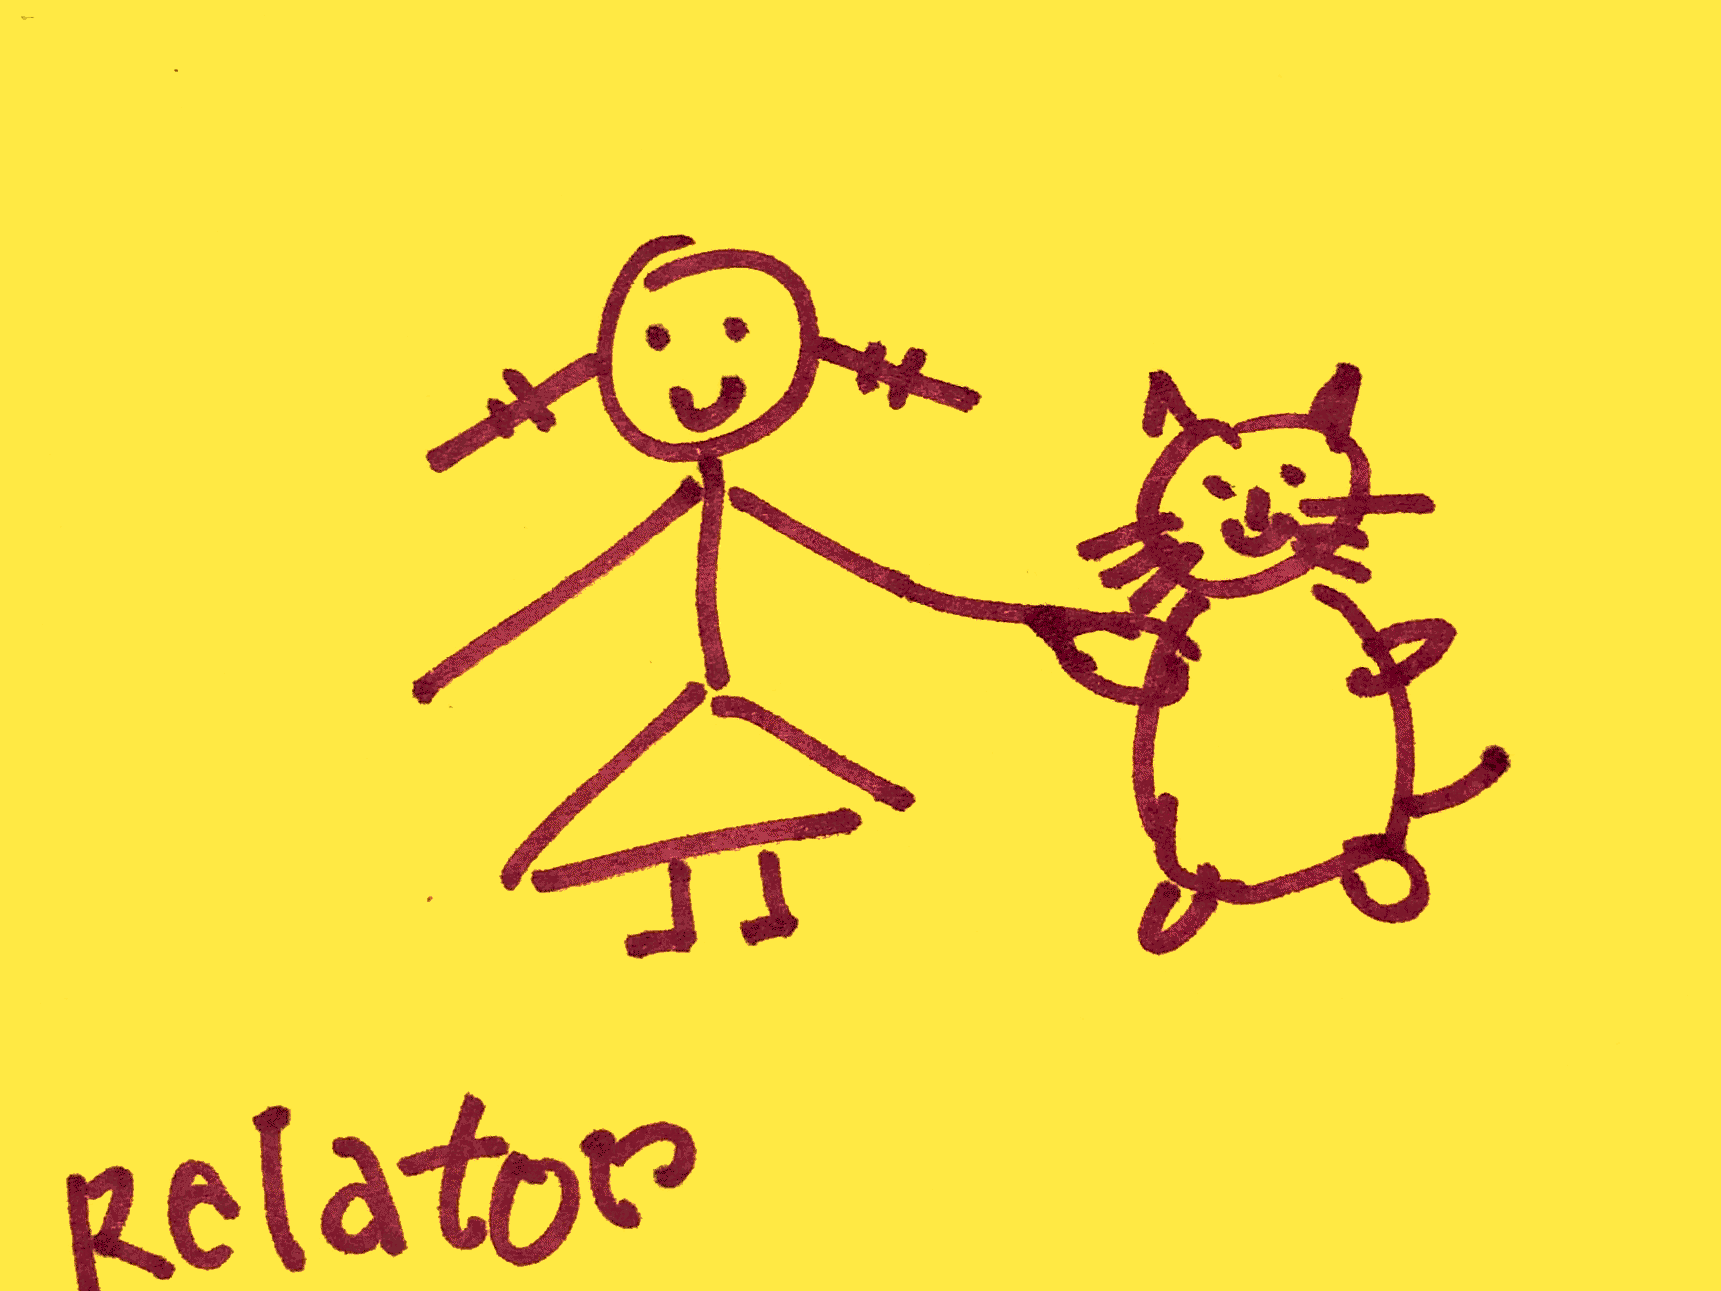 Relator Strengthsfinder Girl and Big Big Cat Friends